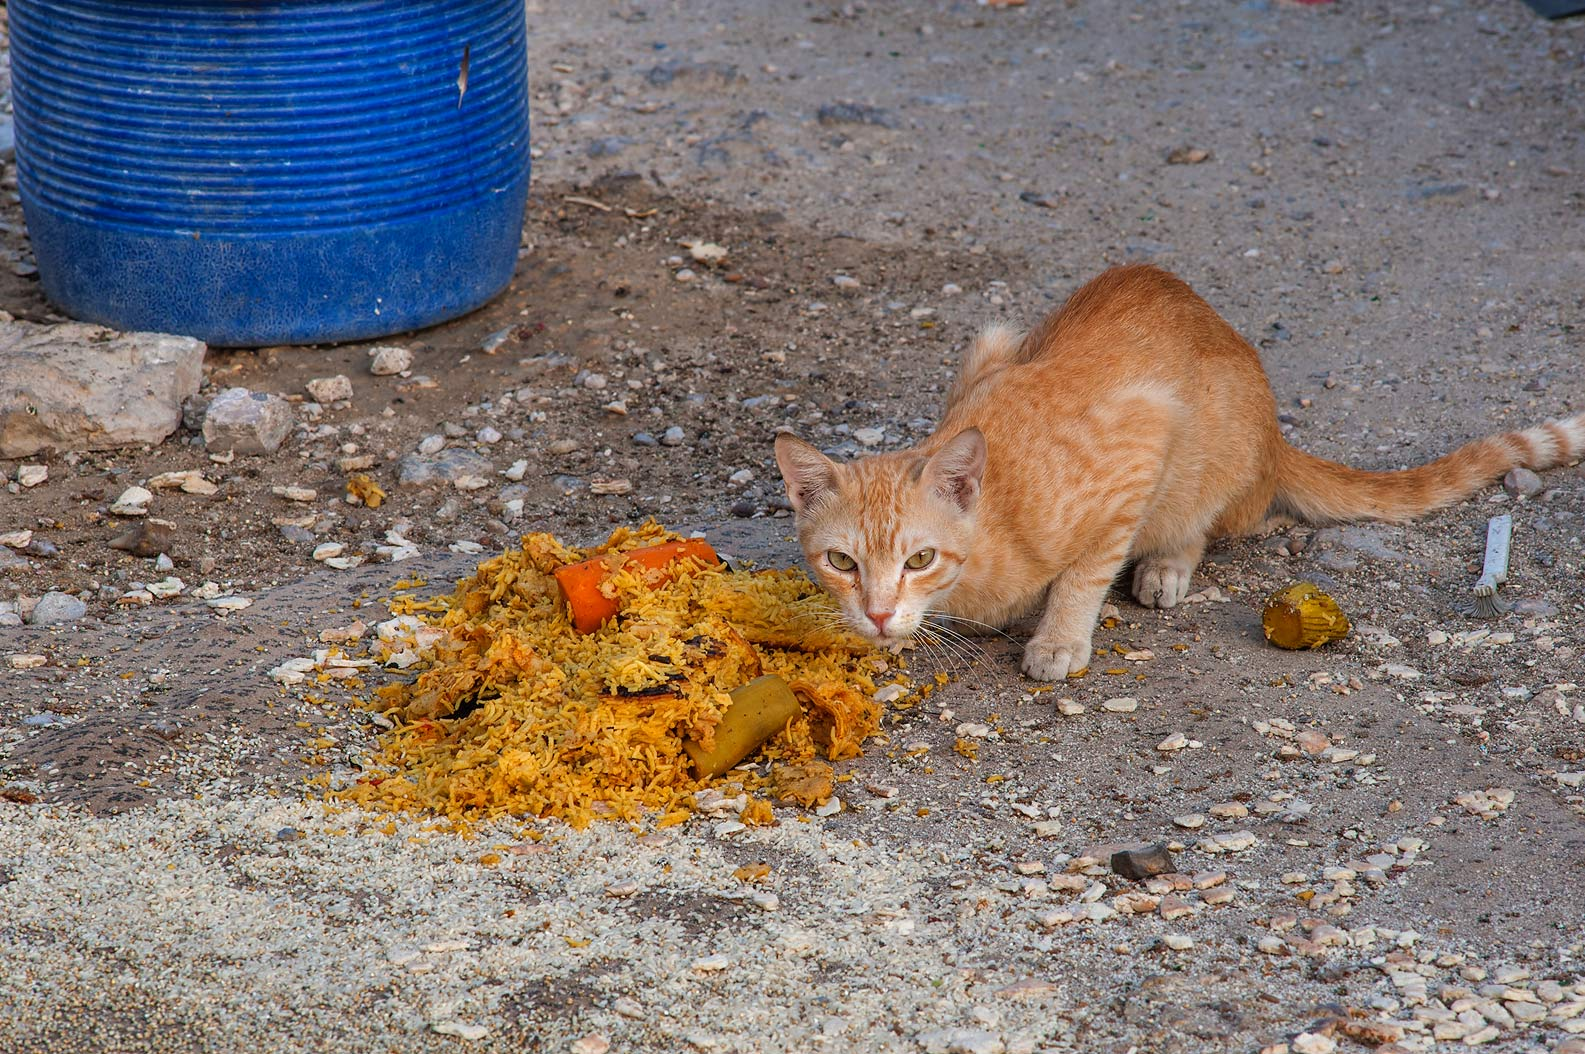 Brown cat eating leftover food from Iftar dinner...St., Musheirib area. Doha, Qatar